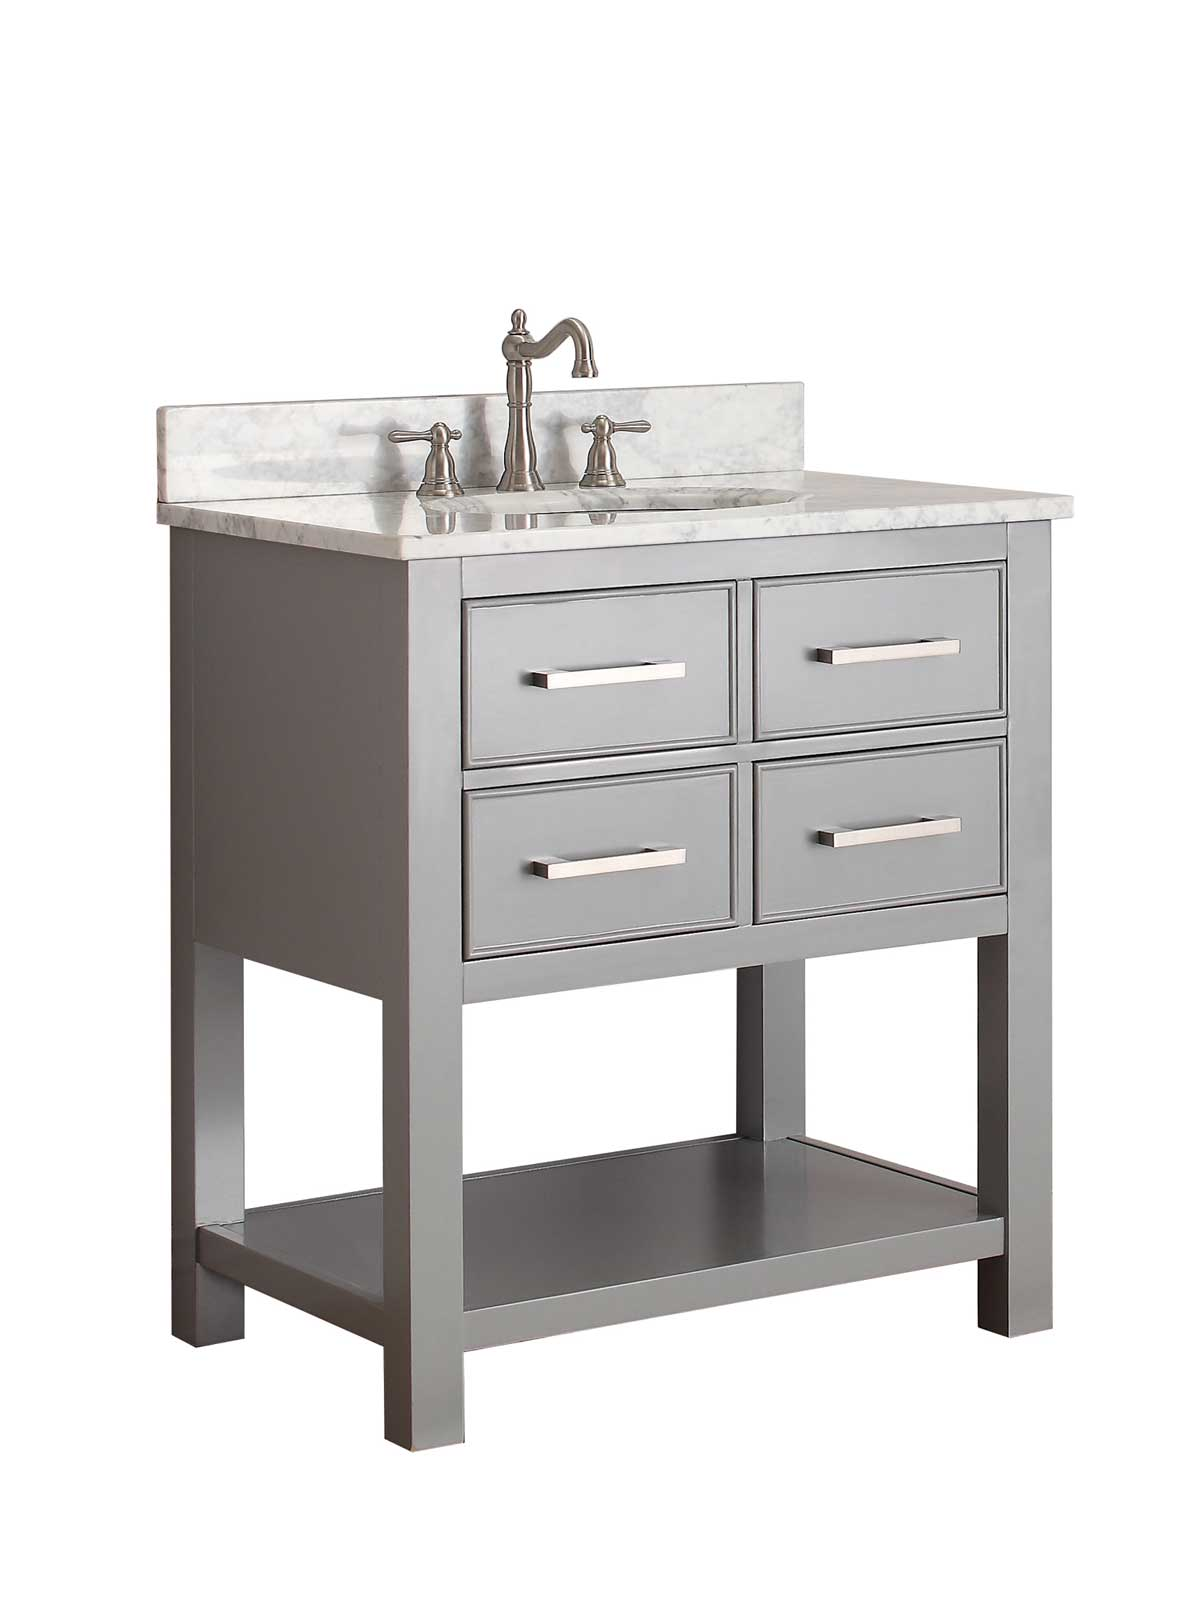 "31"" Begonia Single Bath Vanity - Chilled Gray - Chilled Gray with Carrara Chilled Gray Marble Top"